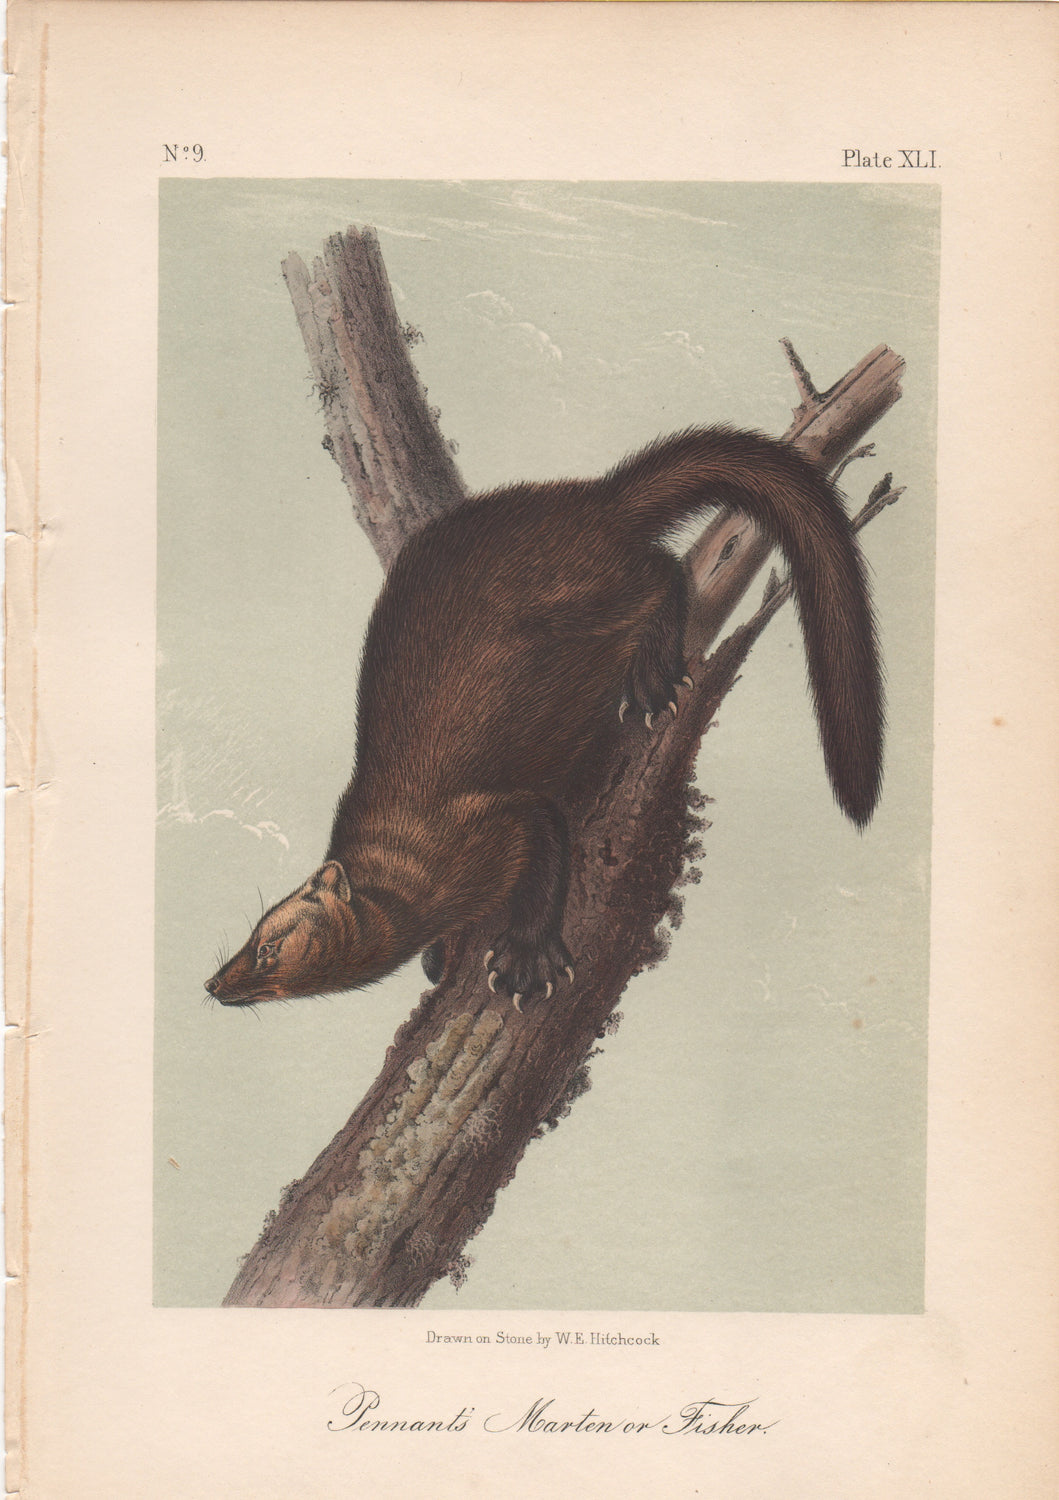 Audubon Original Octavo Mammal, Pennants's Marten or Fisher plate 41